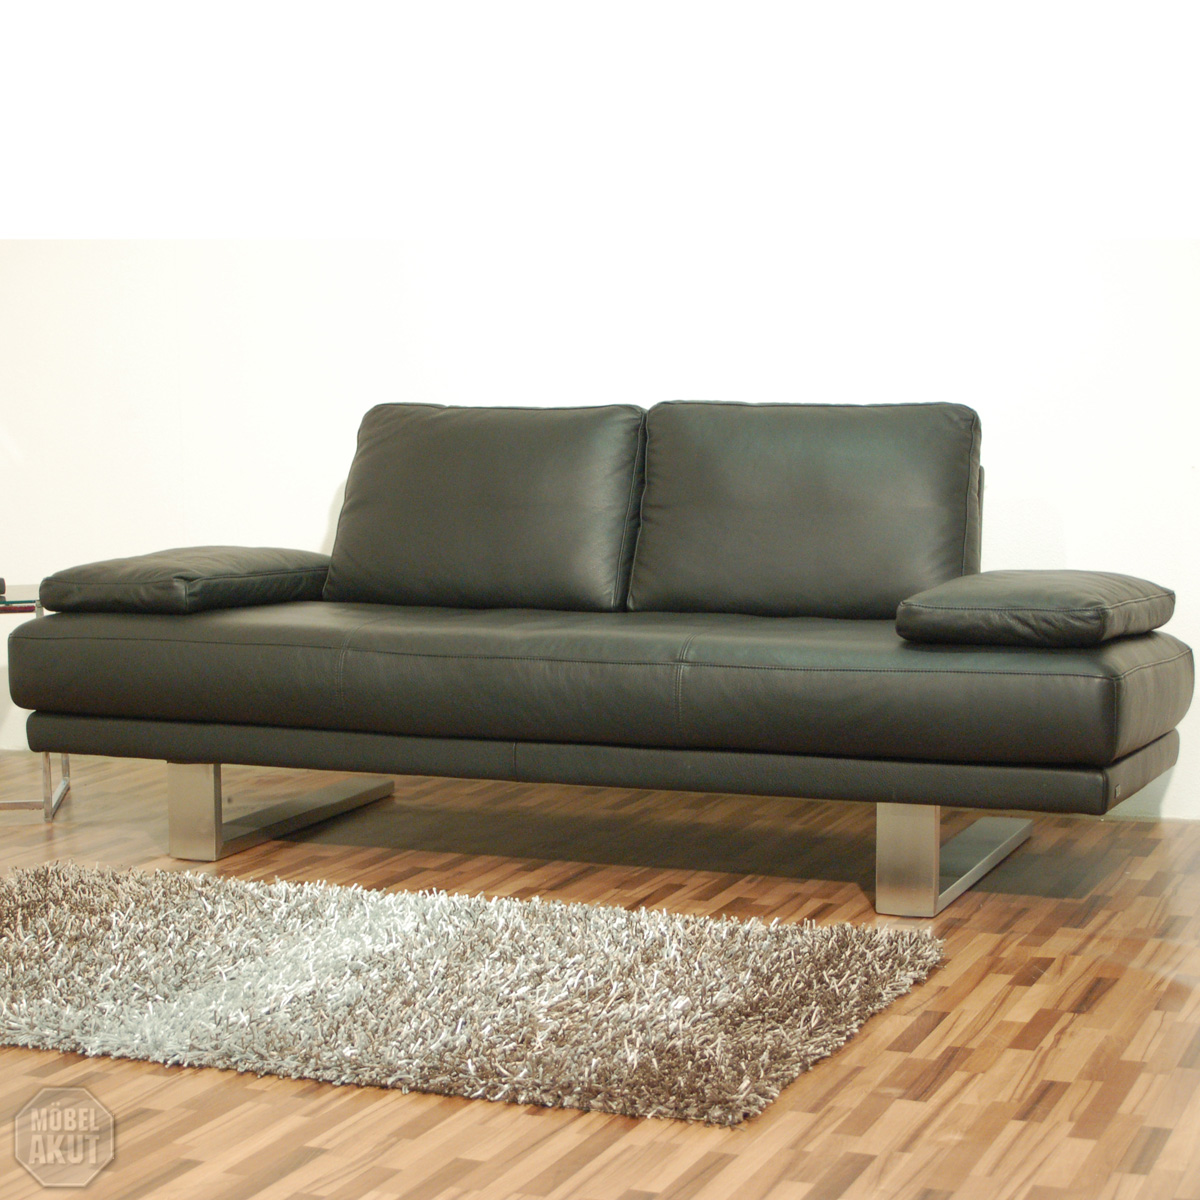 Original Rolf Benz Freischwinger Sofa Sob 6600 In